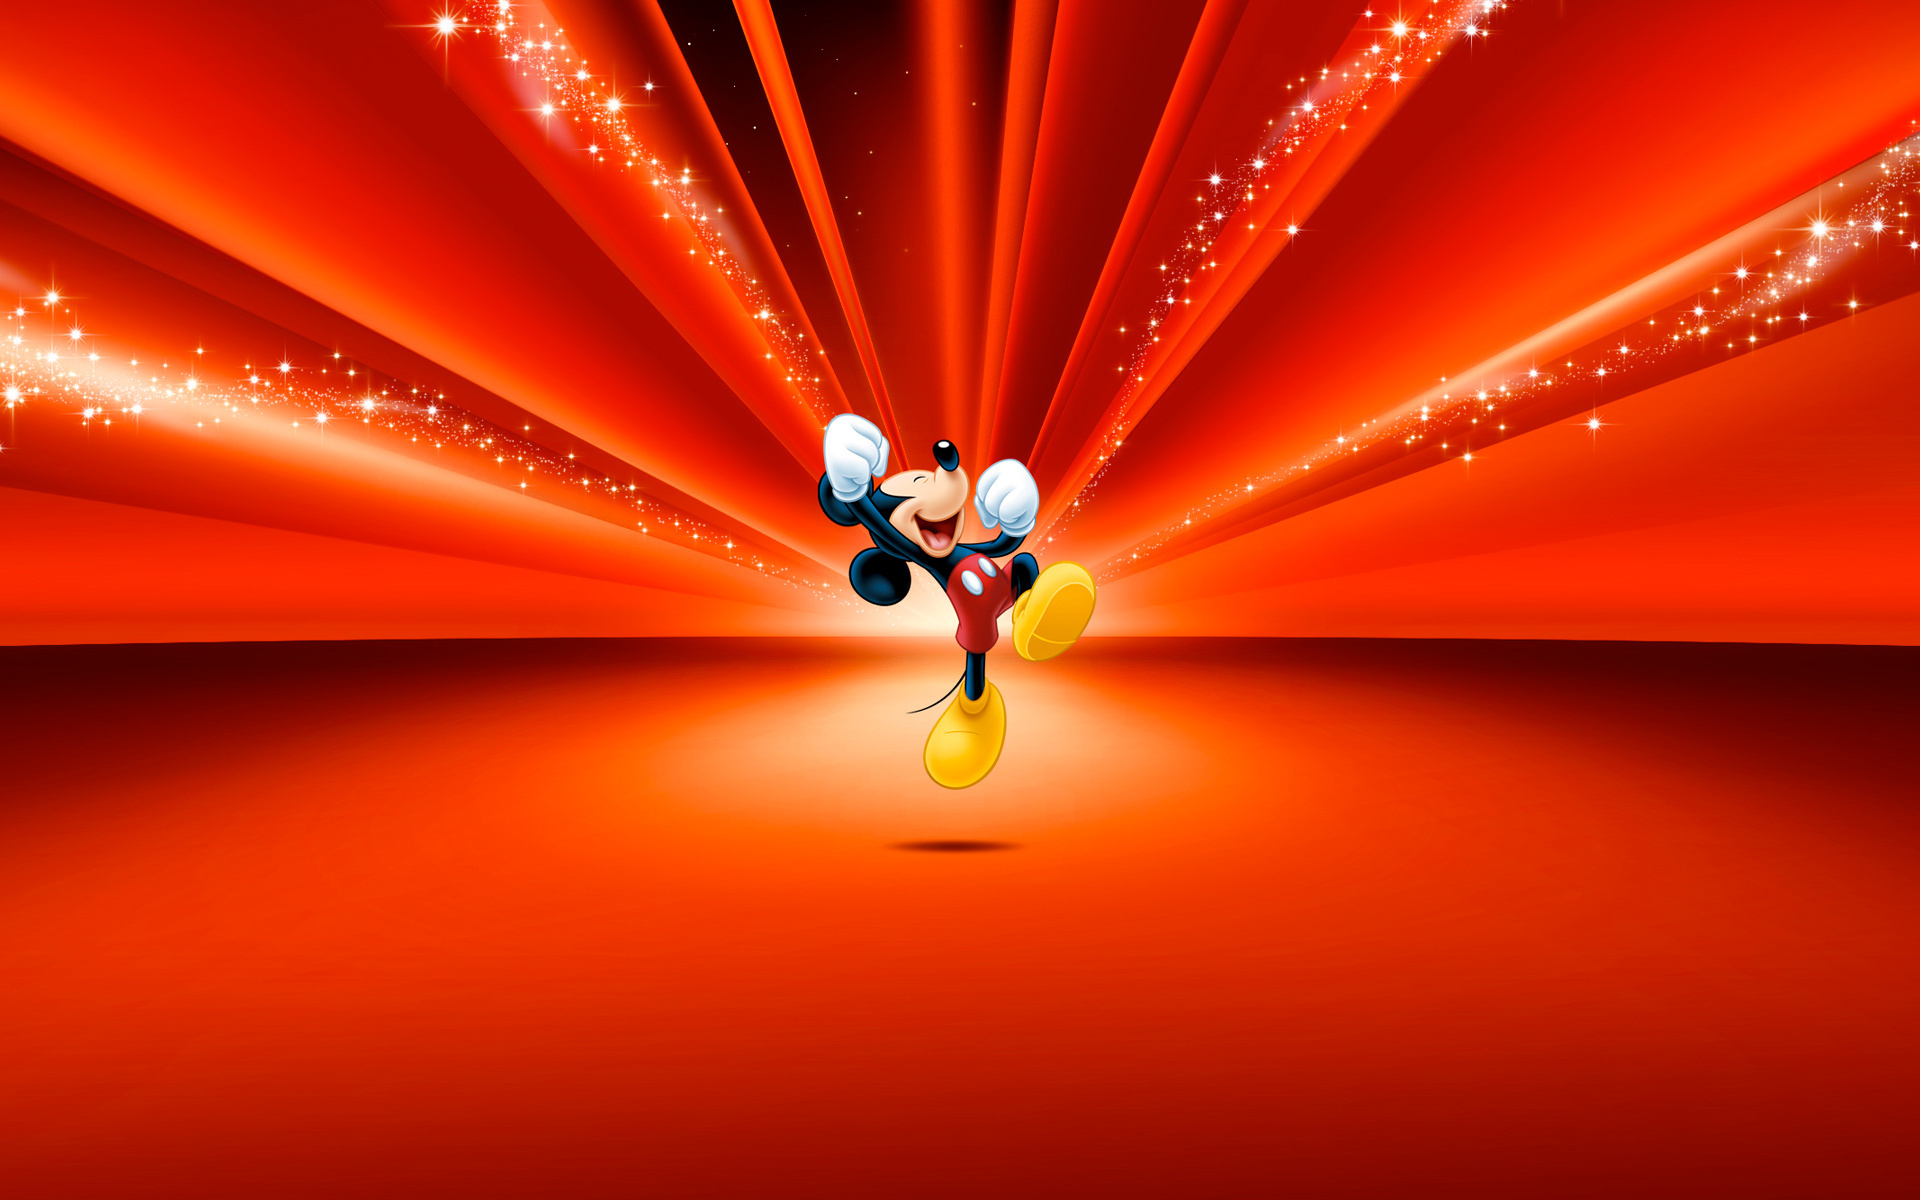 Mickey Mouse Wallpaper Desktop Background Disney cartoon character 1920x1200